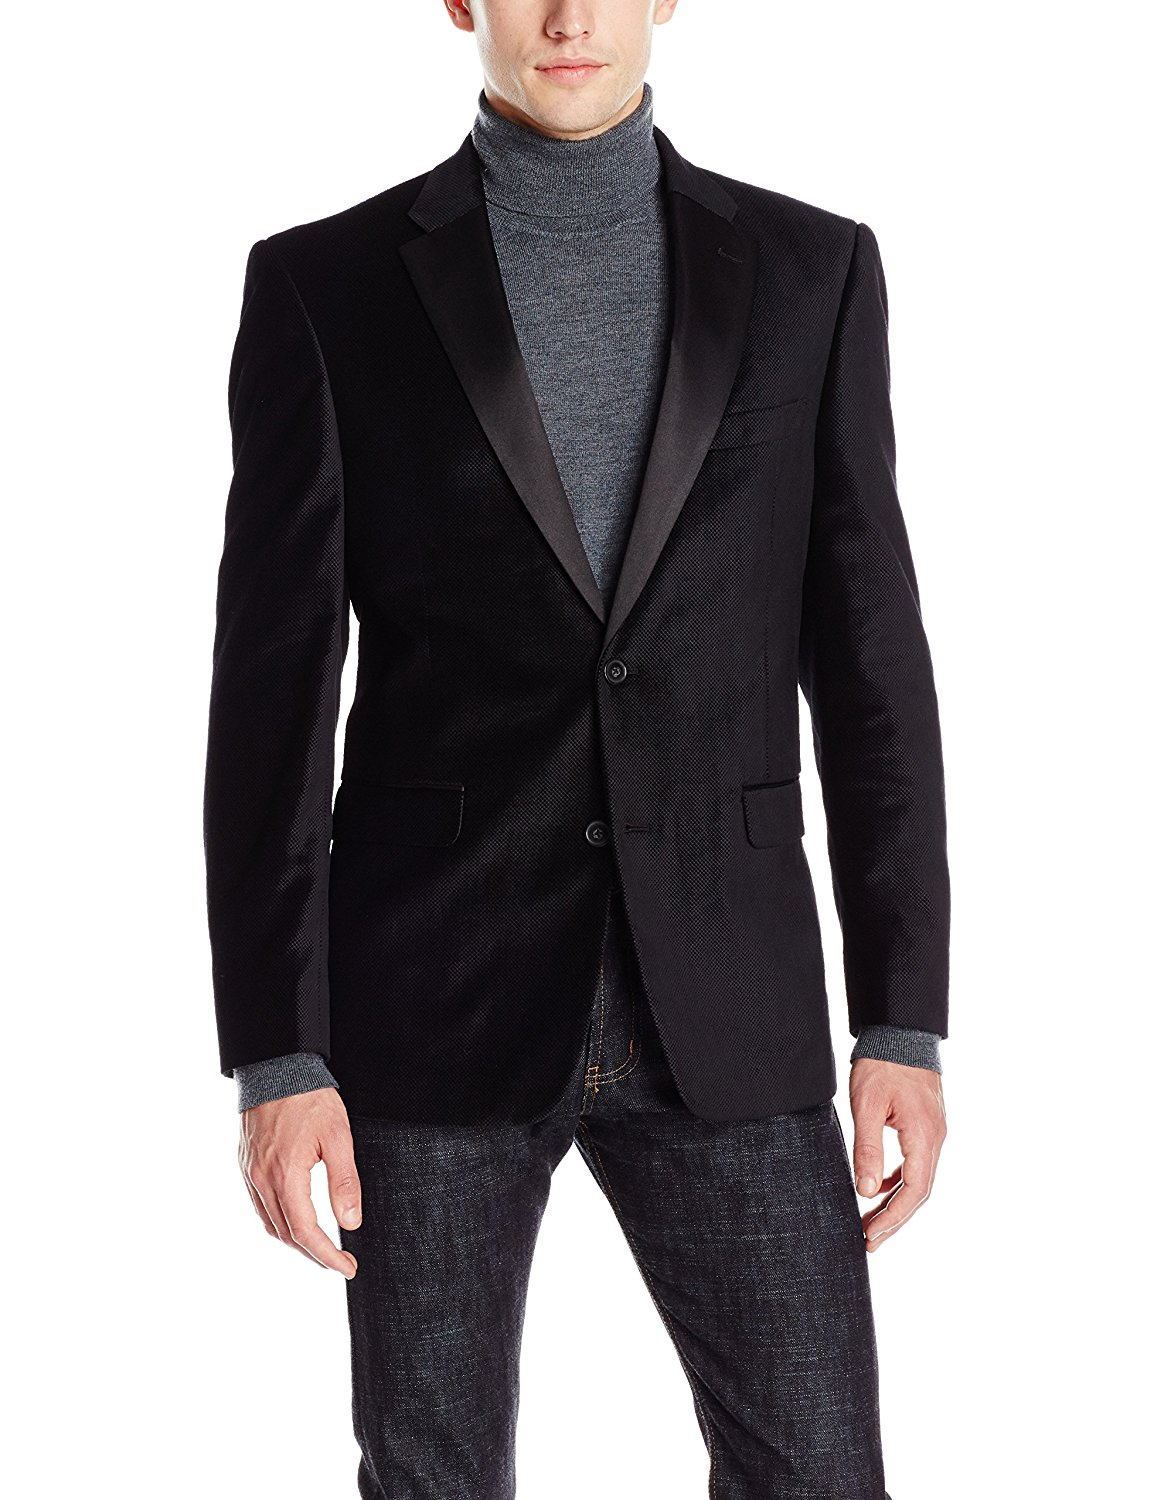 Blazers - Buy from the latest collection of stylish blazers online in India at Best Price. Shop from the range of casual, party, ethnic and formal blazers online from Myntra. Shop from a variety of black, beige, grey and more trendy colours of Blazers Blazers price range from INR to INR +.